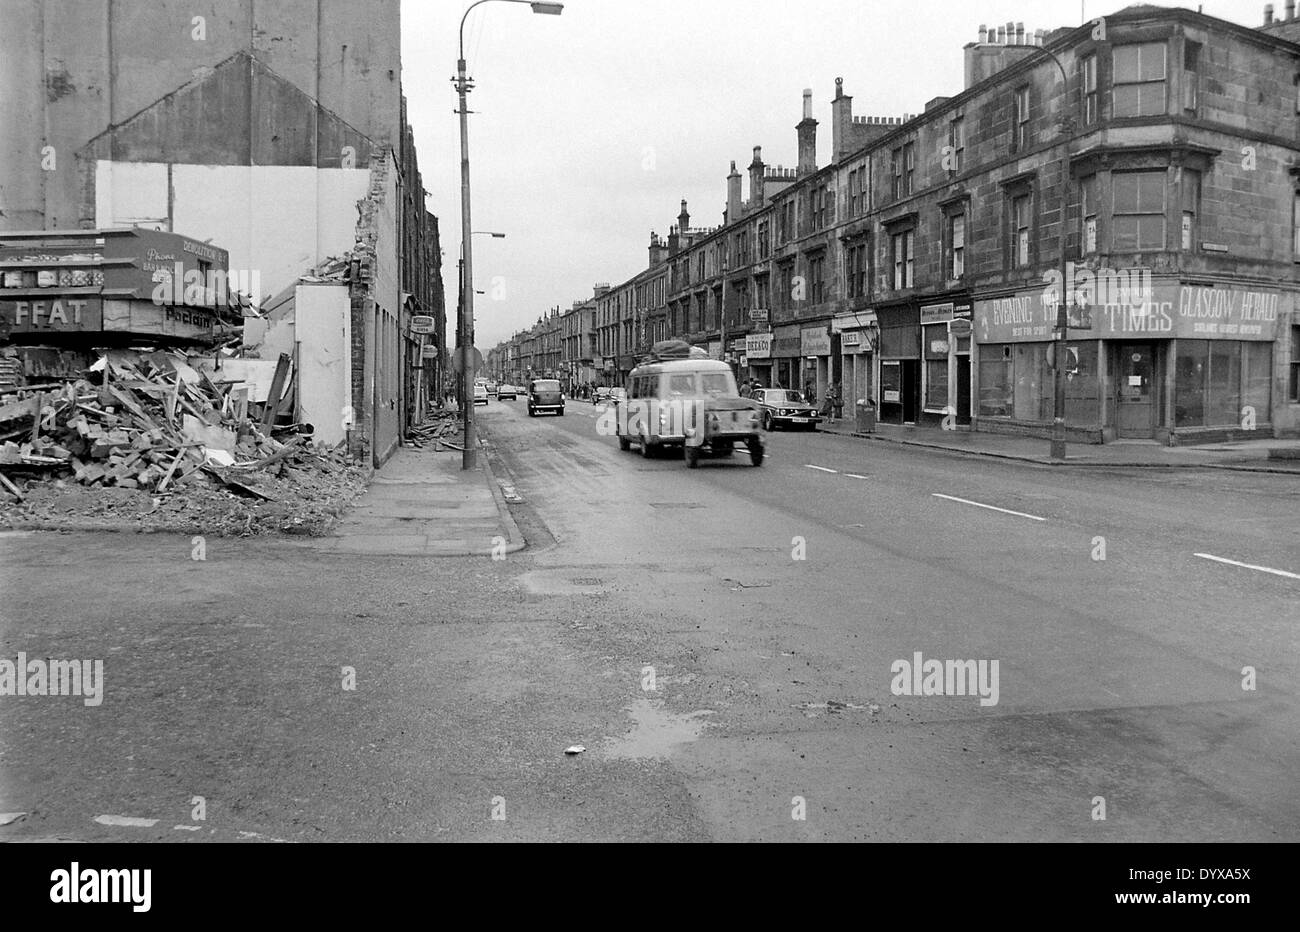 Looking down Glasgow Road, John Brown's shipyard gatehouse being demolished the left, the empty Evening Times on the right - Stock Image